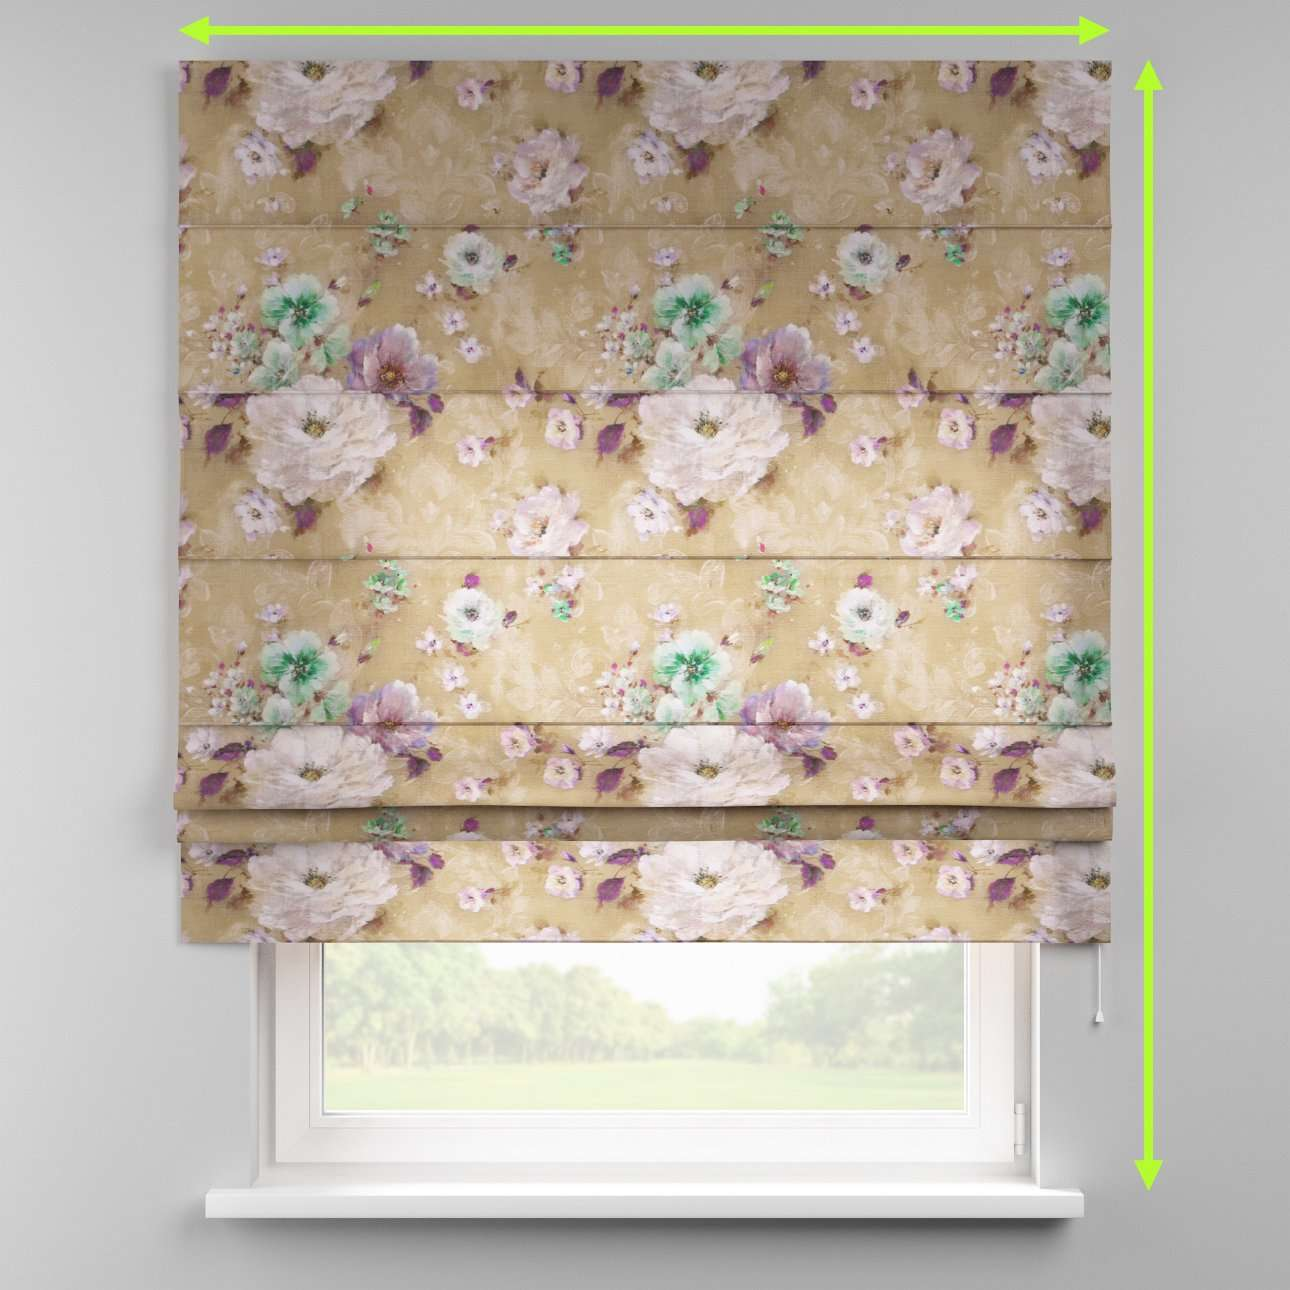 Padva roman blind  in collection Monet, fabric: 137-82